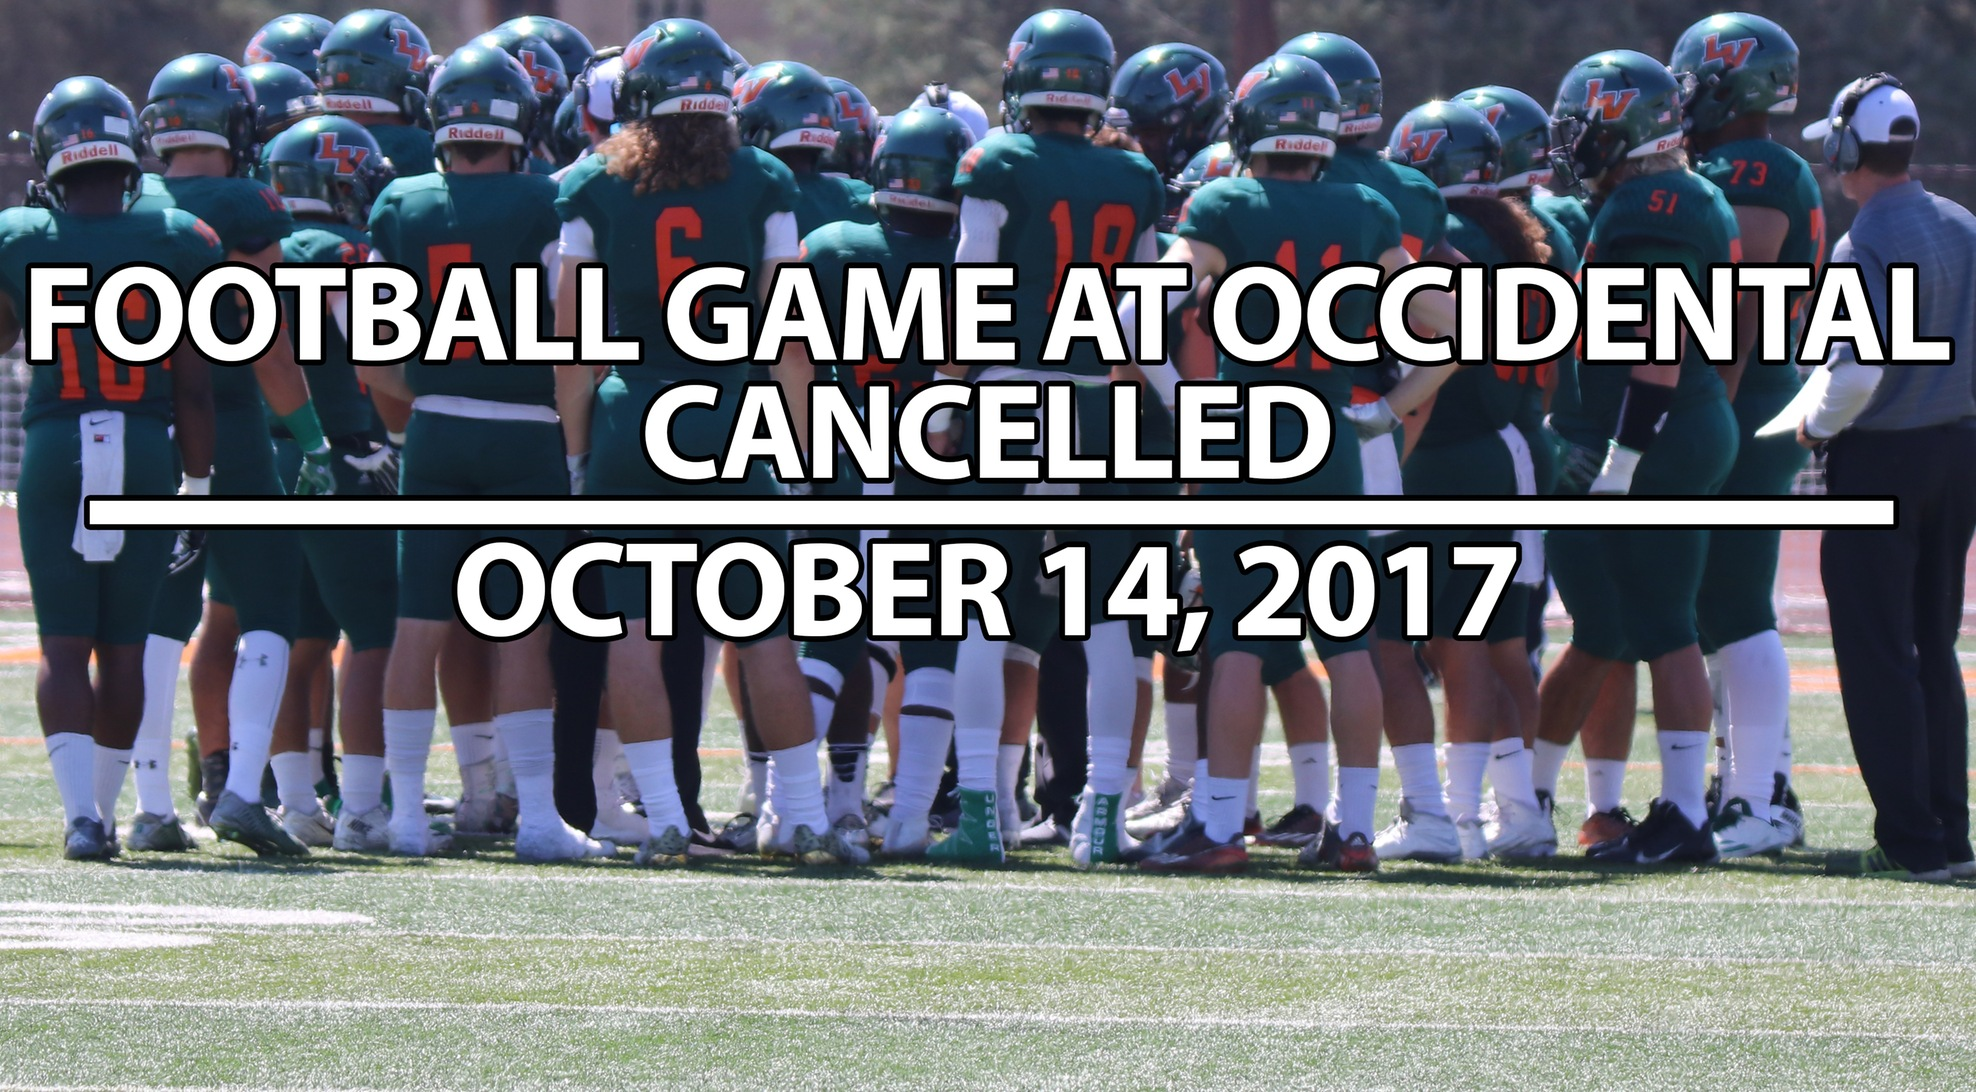 La Verne Football Game at Occidental Cancelled